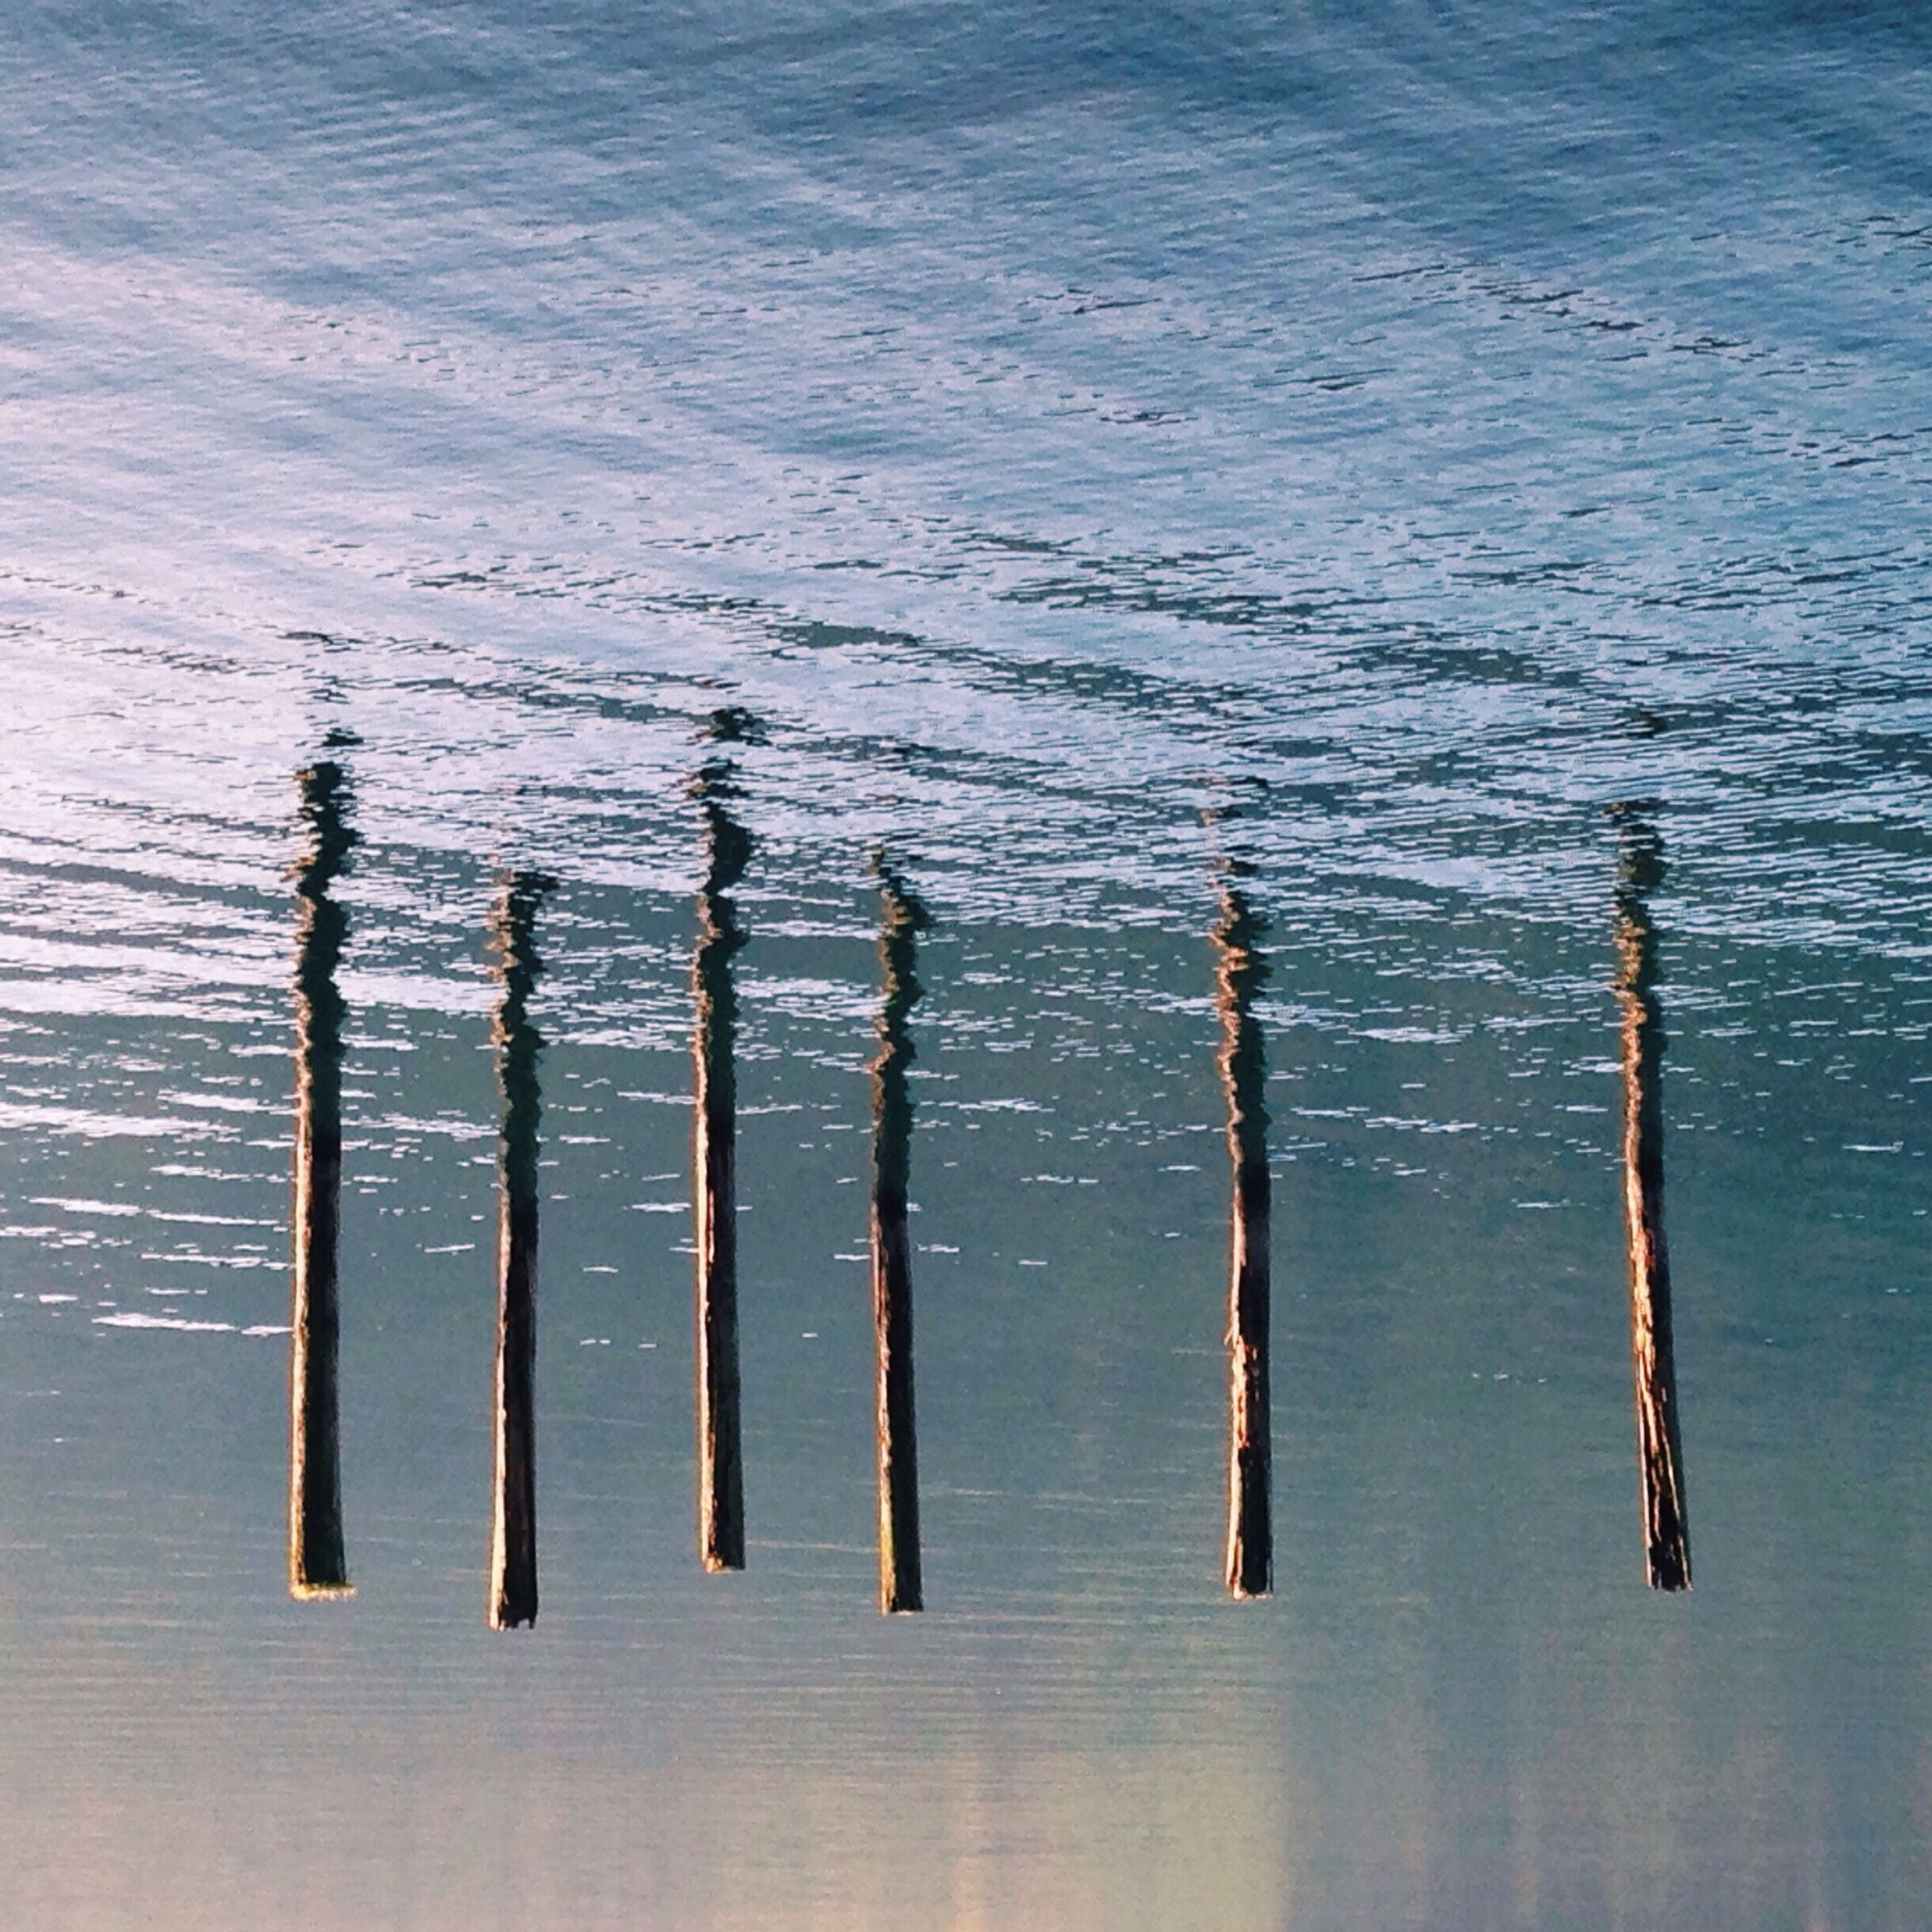 wood - material, water, close-up, high angle view, still life, wooden, in a row, no people, textured, nature, backgrounds, side by side, pattern, full frame, wooden post, day, outdoors, metal, large group of objects, tranquility